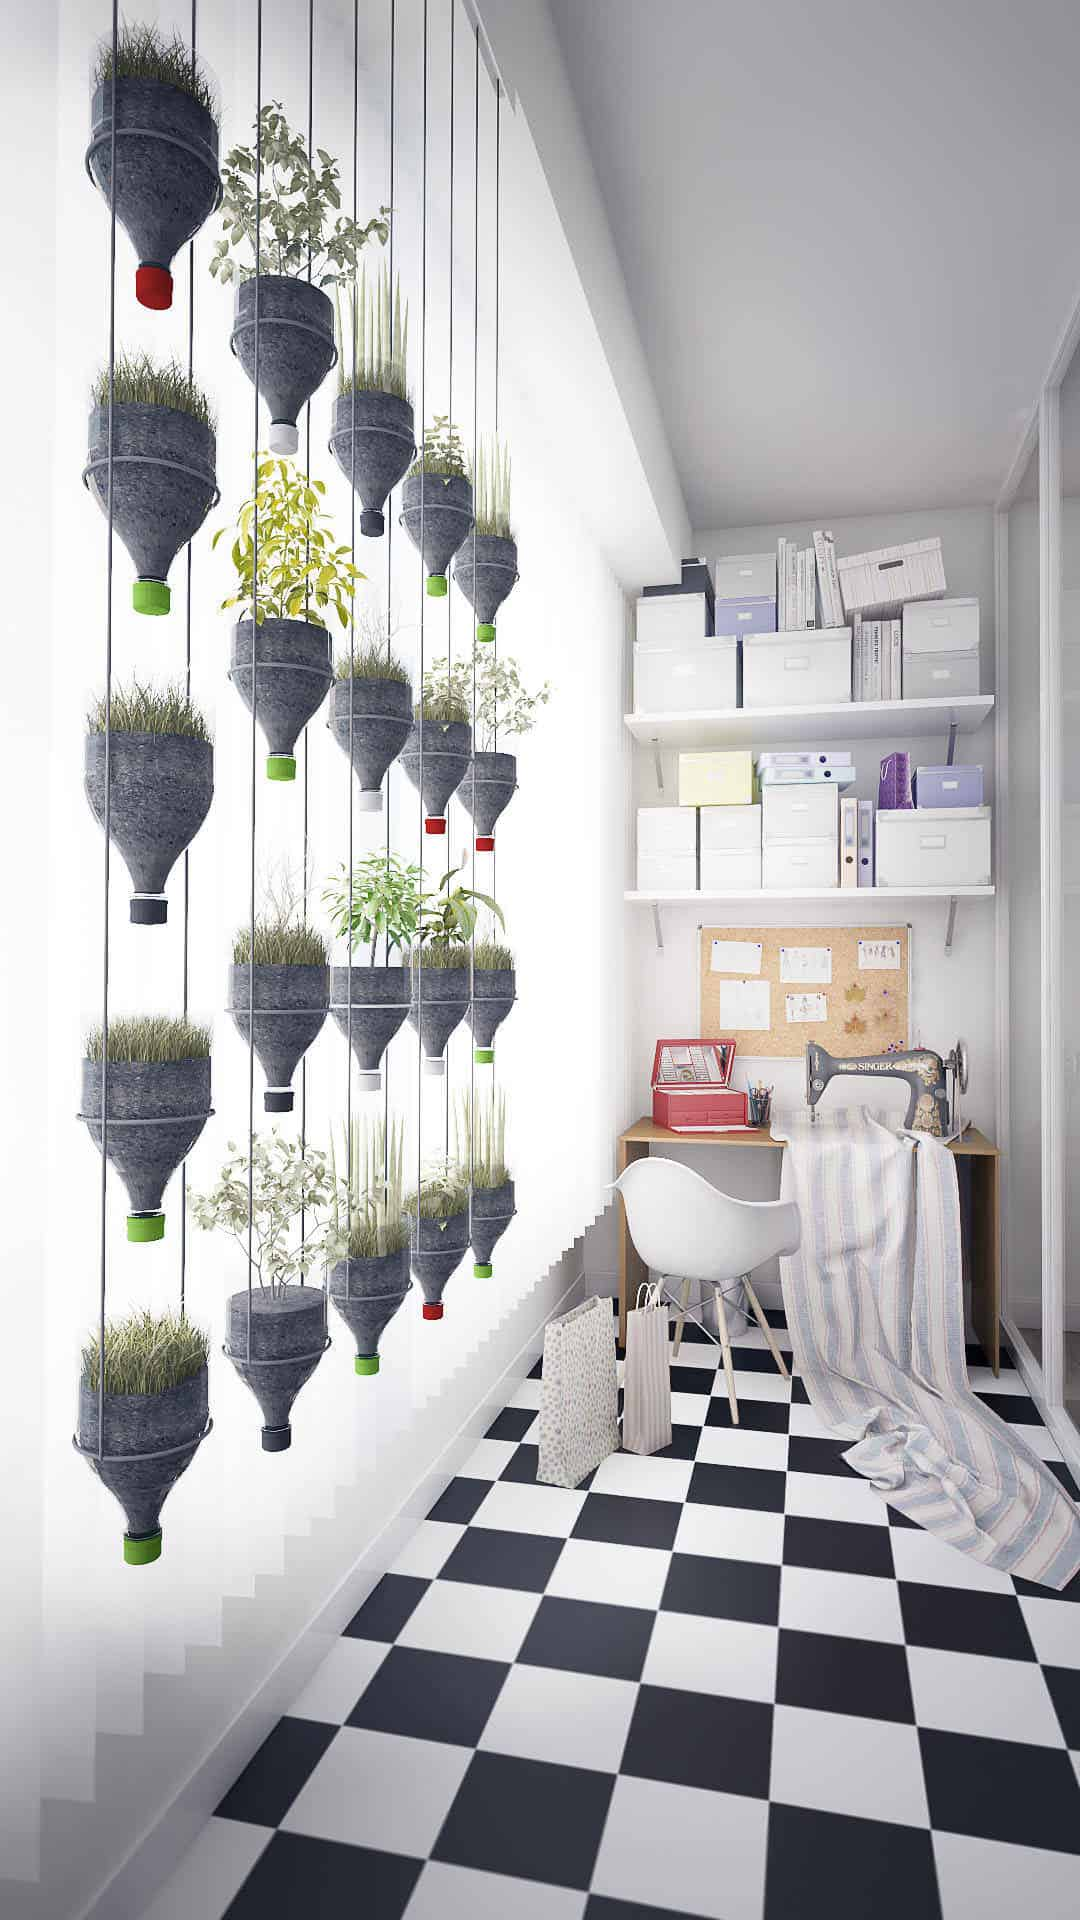 Modern Hanging Plants Wall from Recycled Plastic Bottles • Recyclart